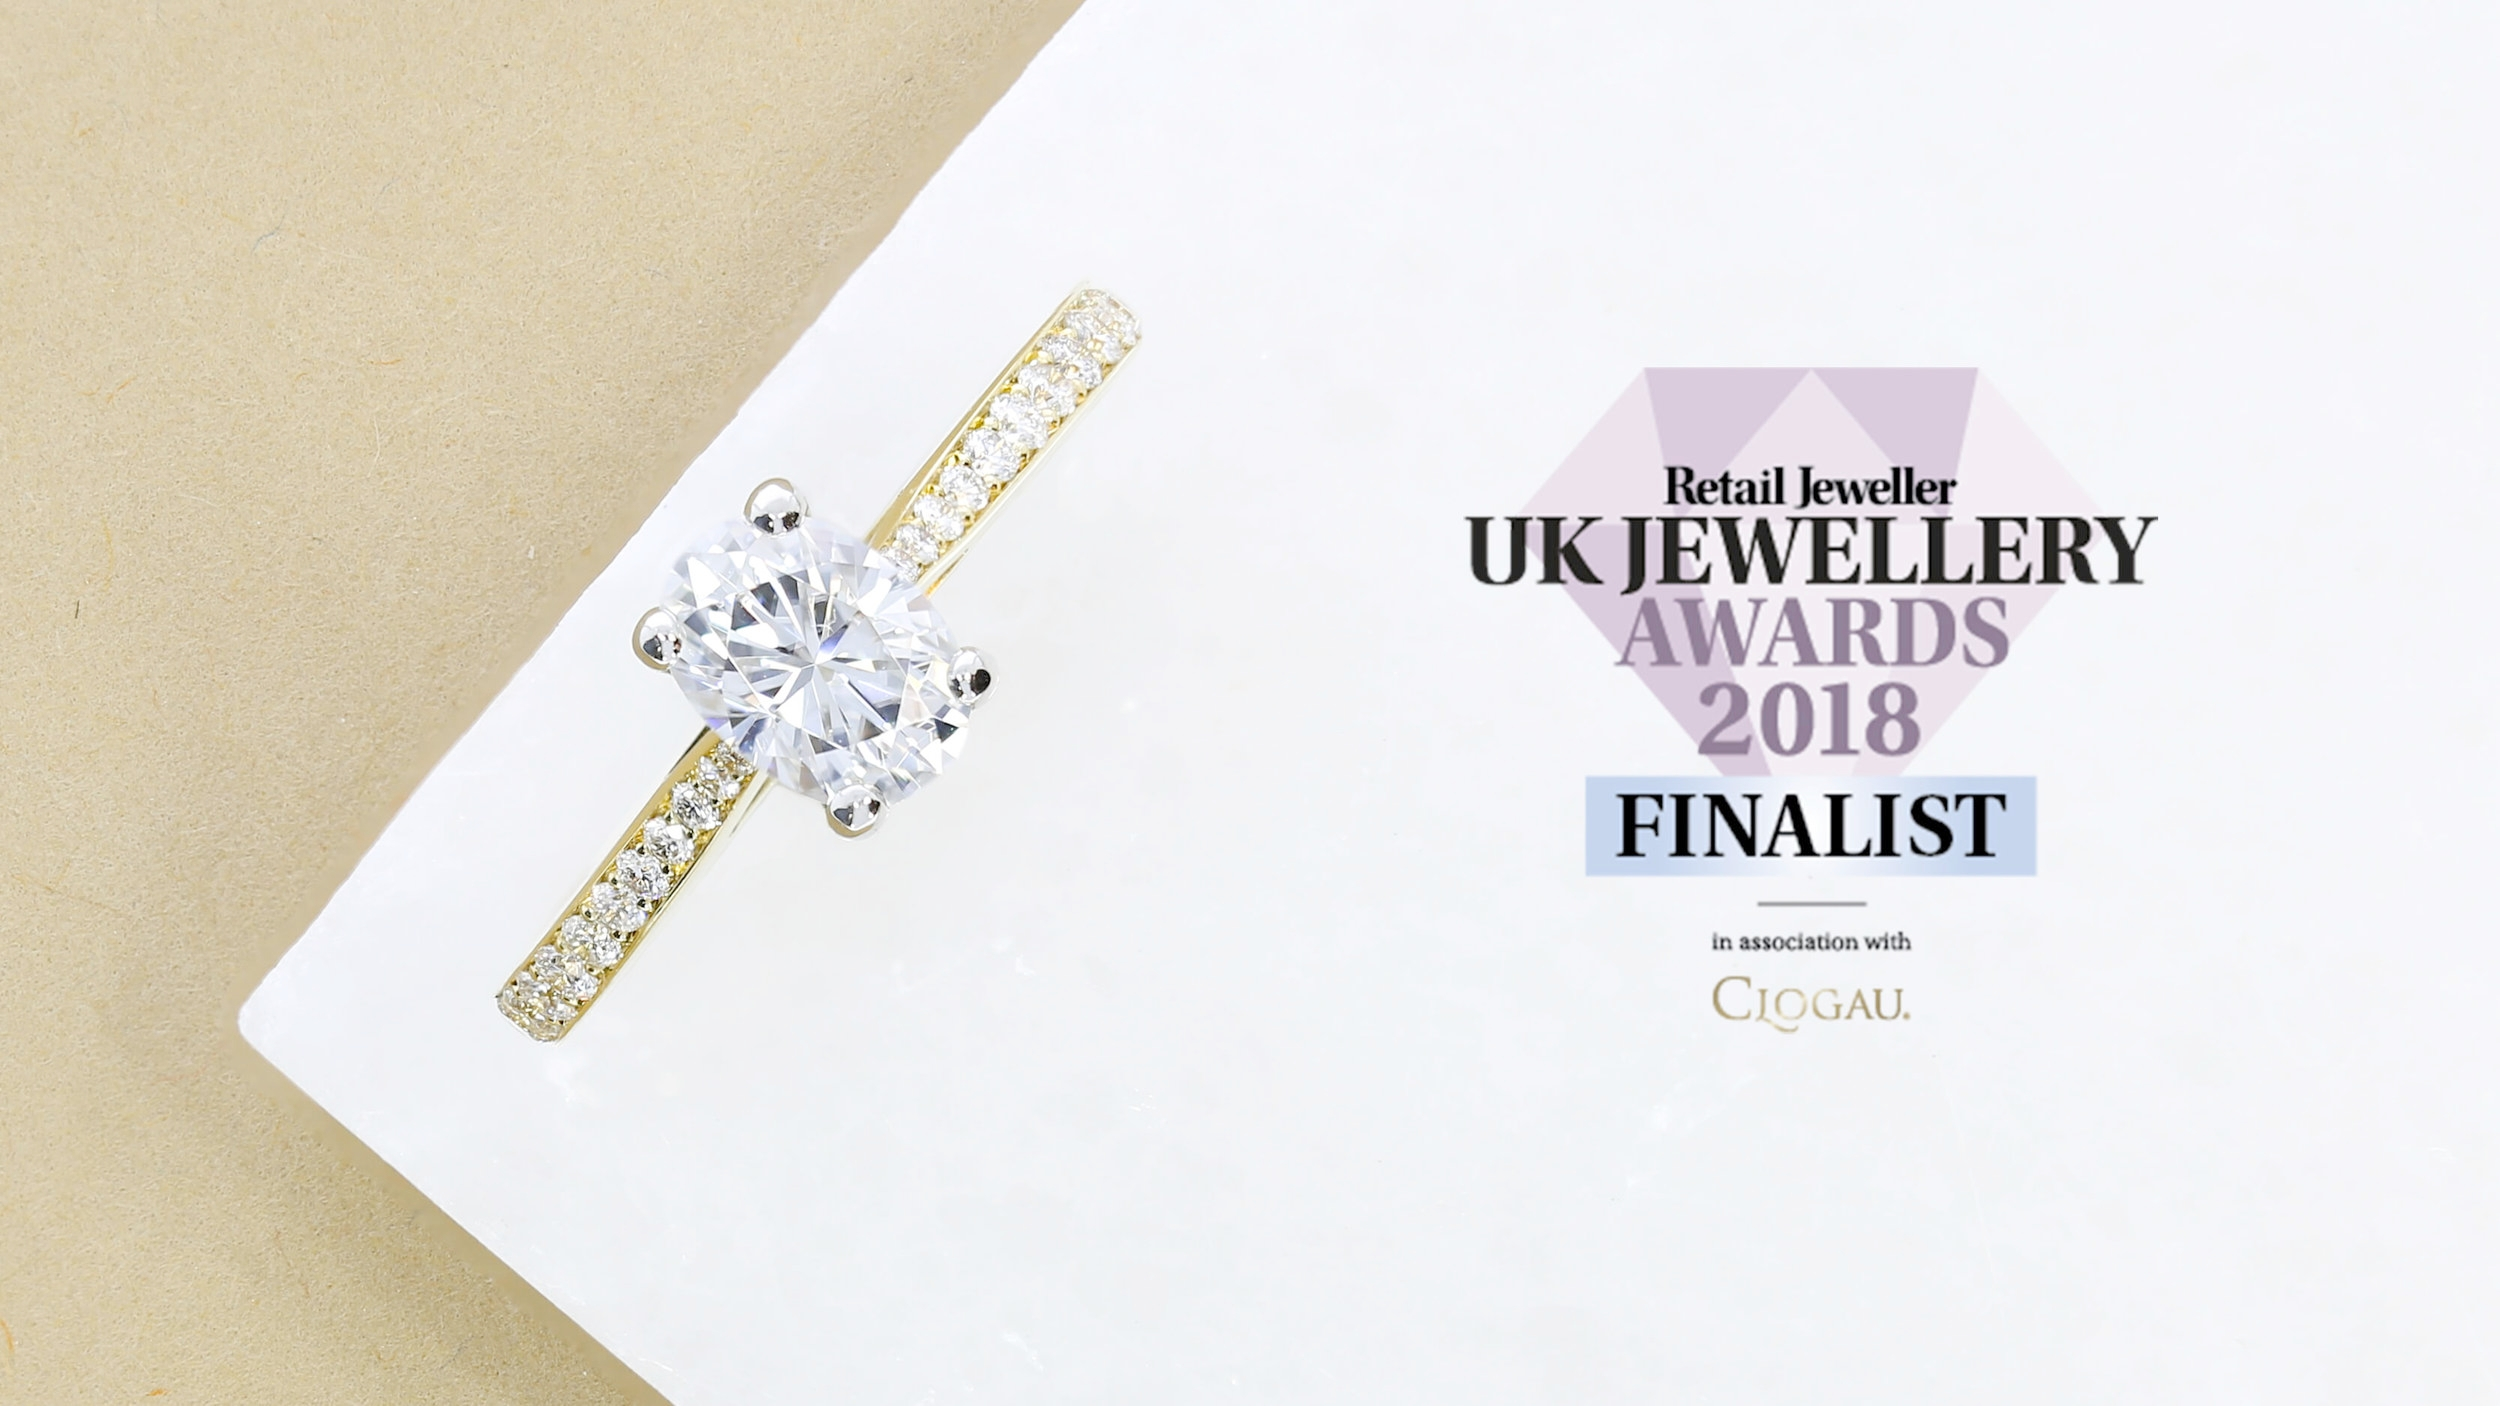 queensmith-master-jewellers-retail-jeweller-uk-jewellery-awards-finalist-shortlist-best-bridal-jeweller-of-the-year-engagement-ring-wedding-bands-hatton-garden